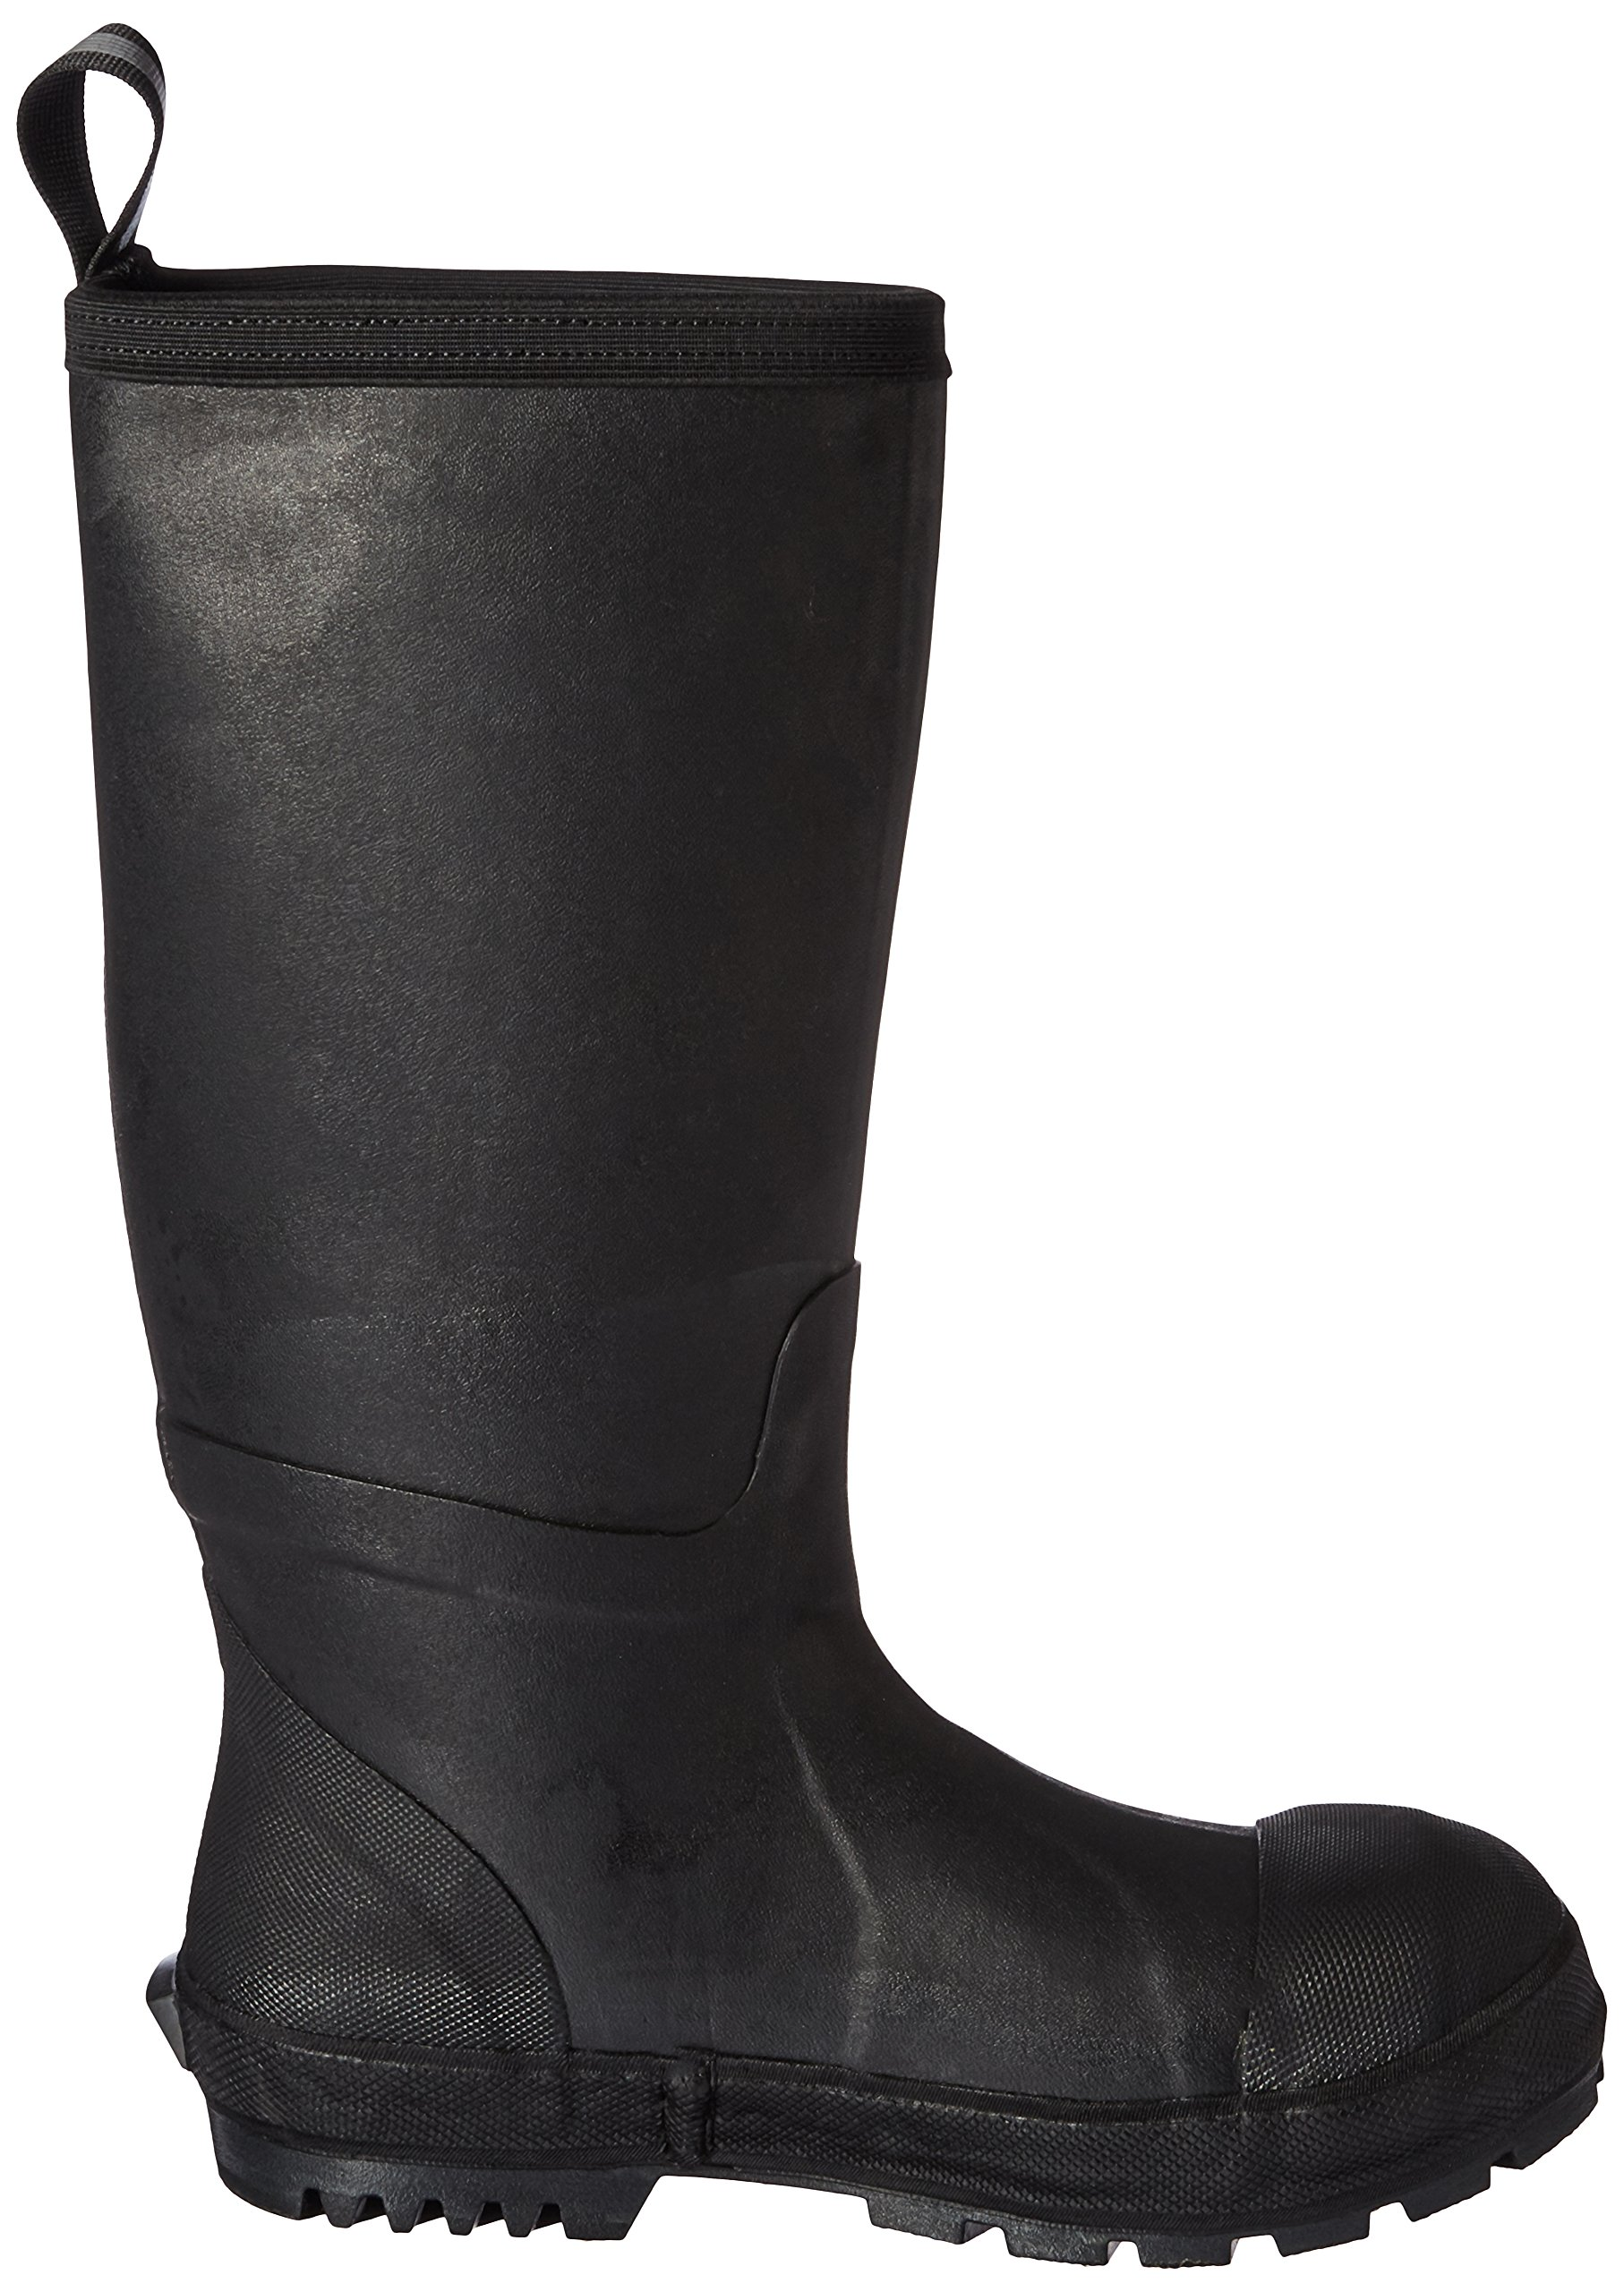 Muck Boot Men's Chore Resistant Tall Steel Toe Work Boot, Black, 10 US/10-10.5 M US by Muck Boot (Image #7)